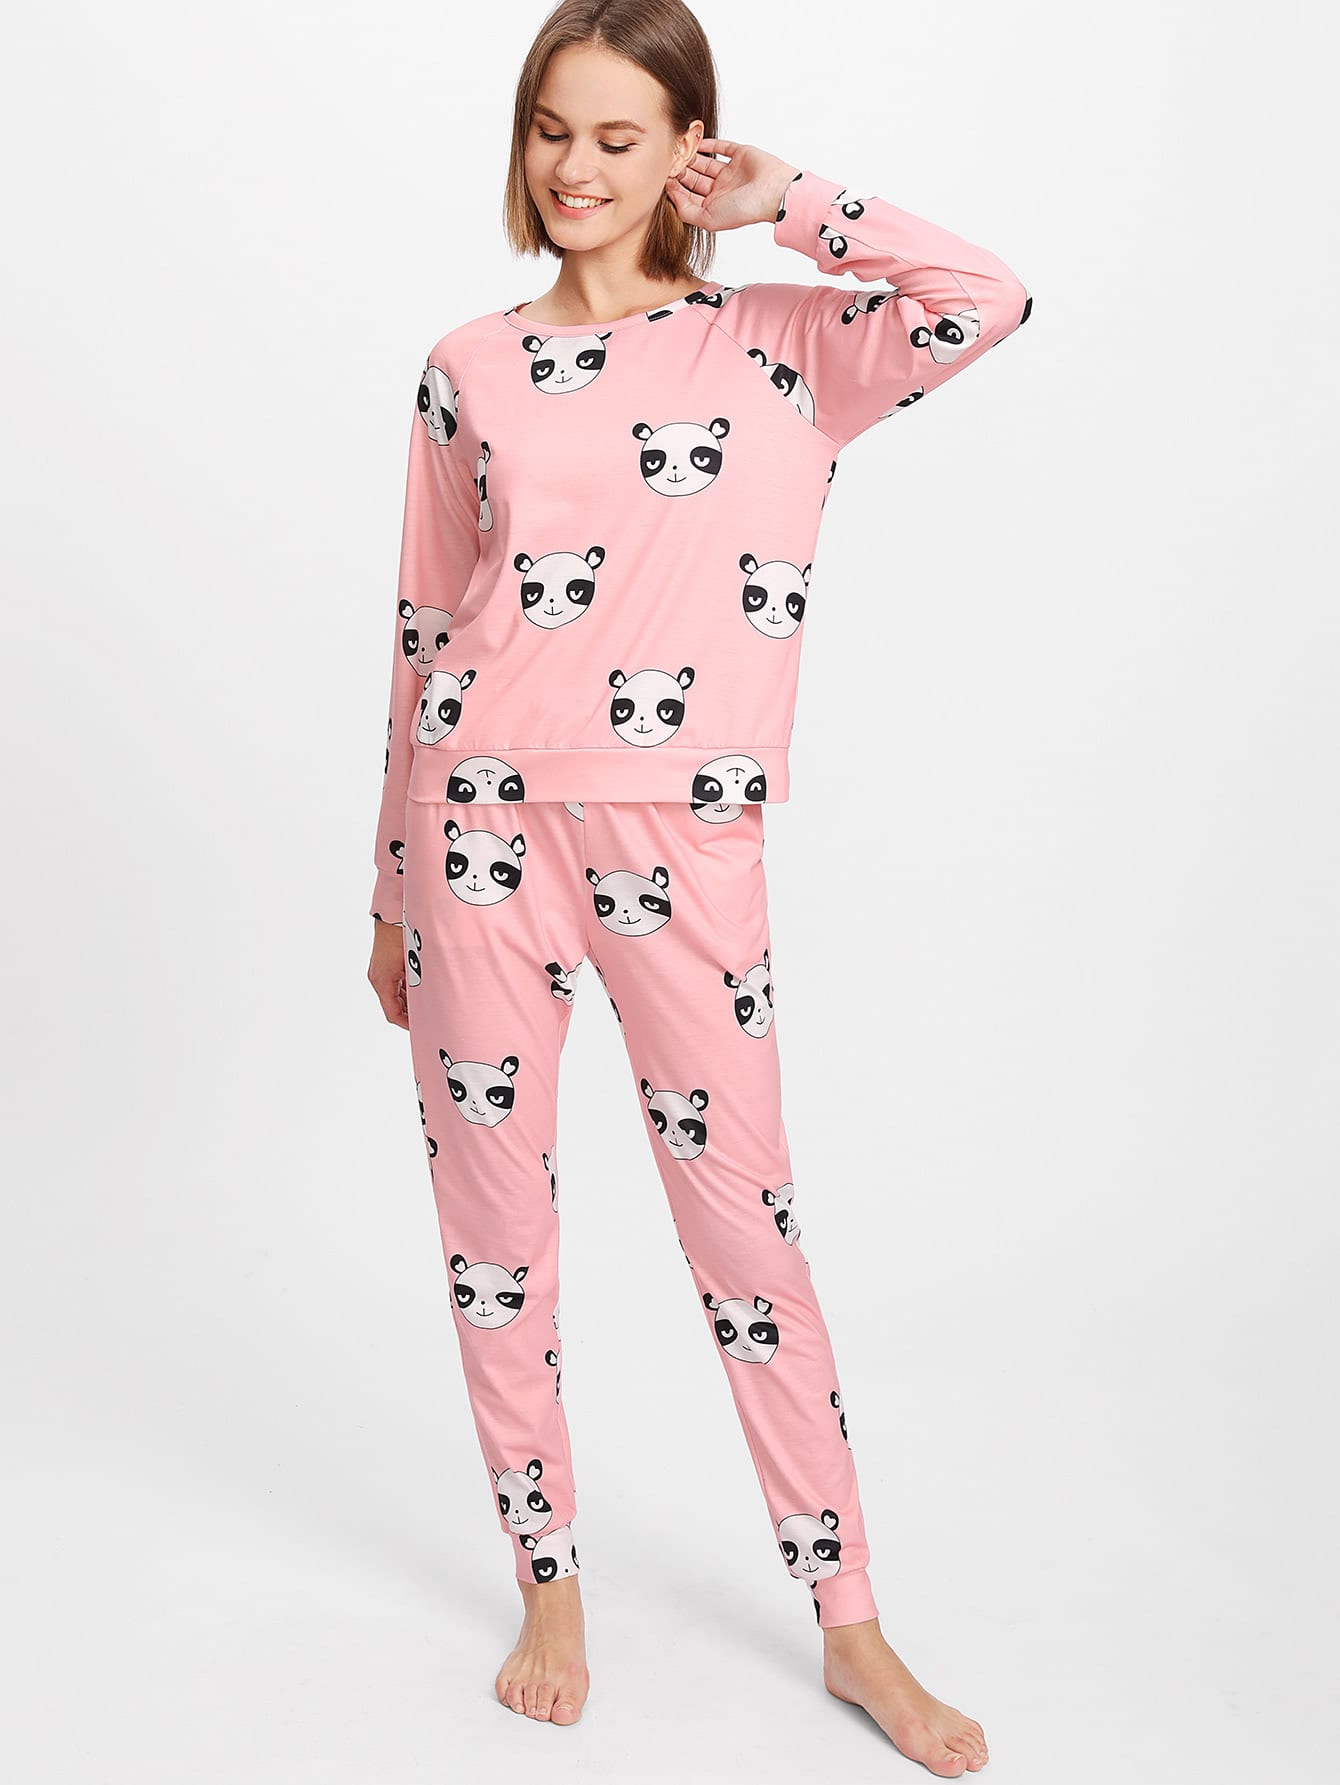 Image of Allover Panda Printed Raglan Sleeve Top & Sweatpants Pajama Set